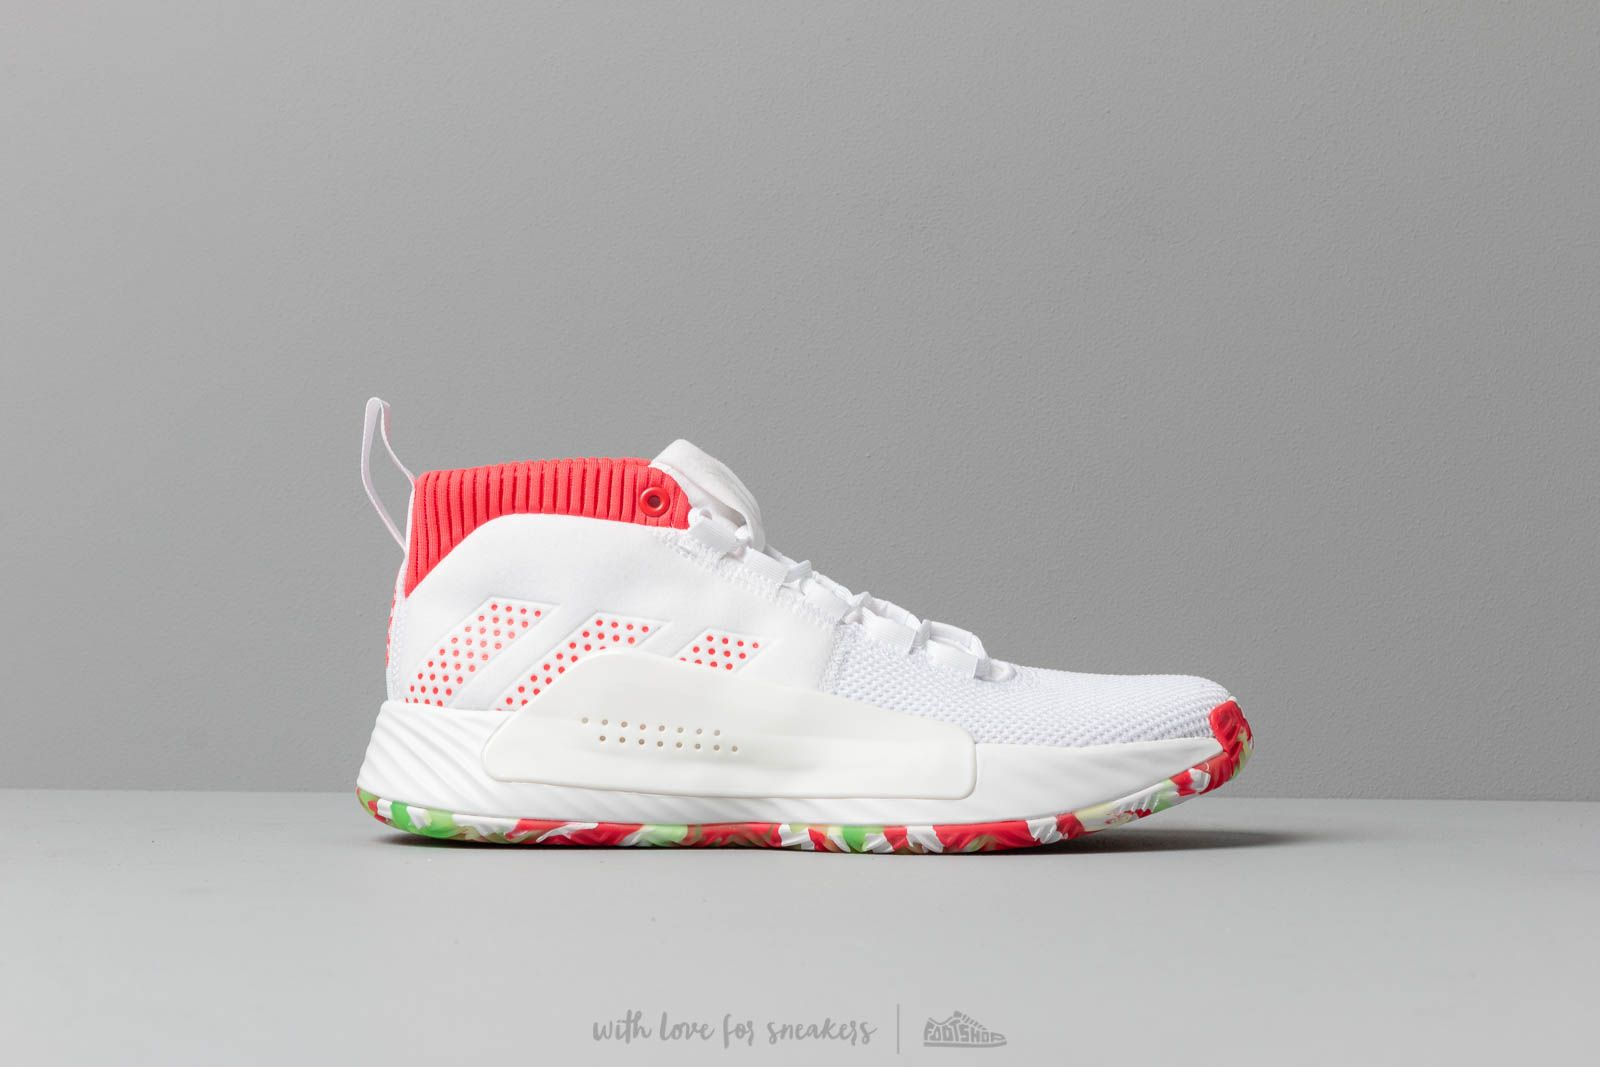 9aed34ce0644d9 adidas Dame 5 Ftw White  Shored  Crystal White at a great price 106 €